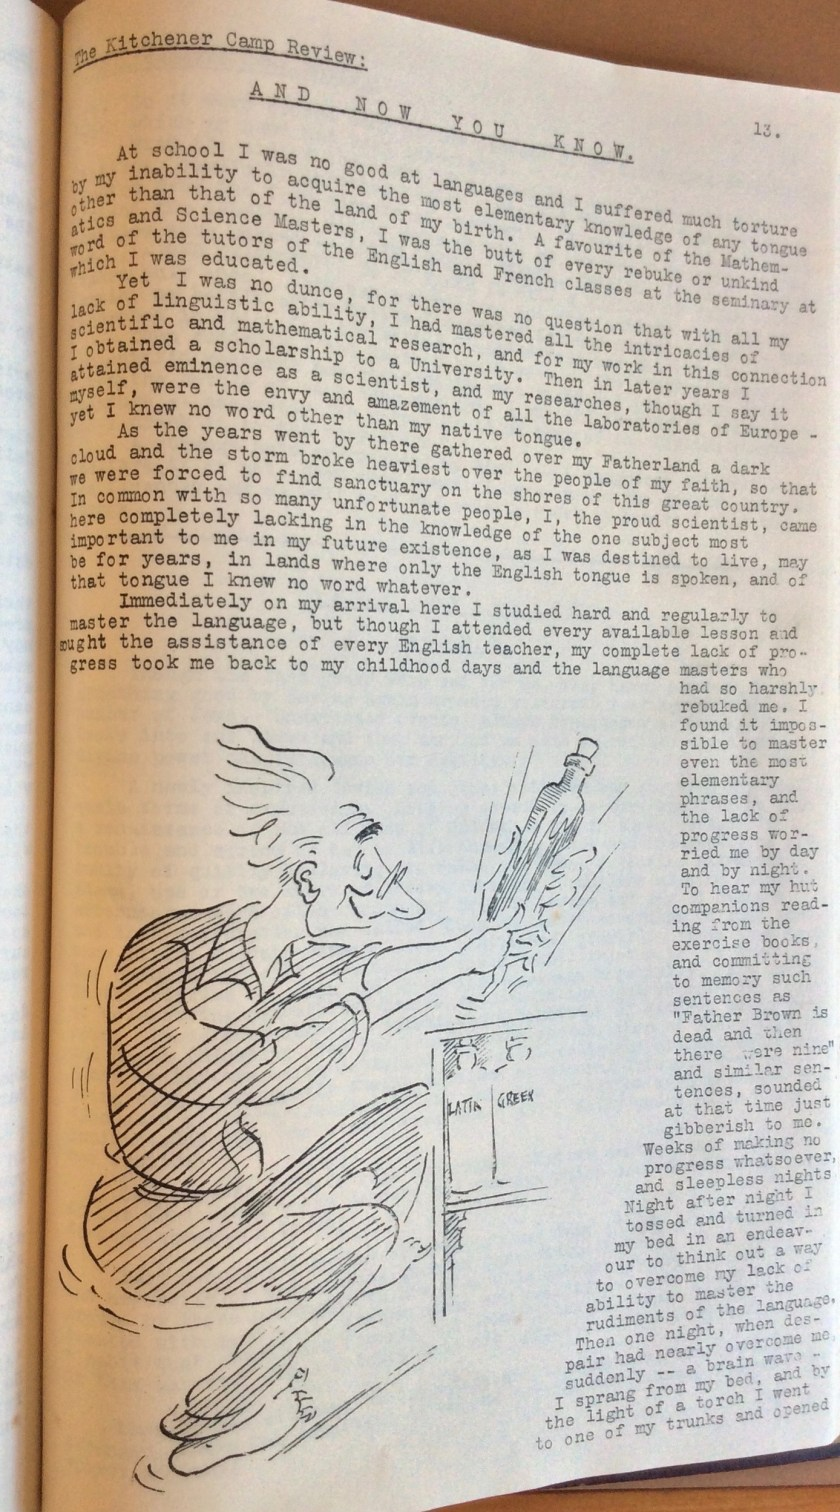 The Kitchener Camp Review, August 1939, page 13